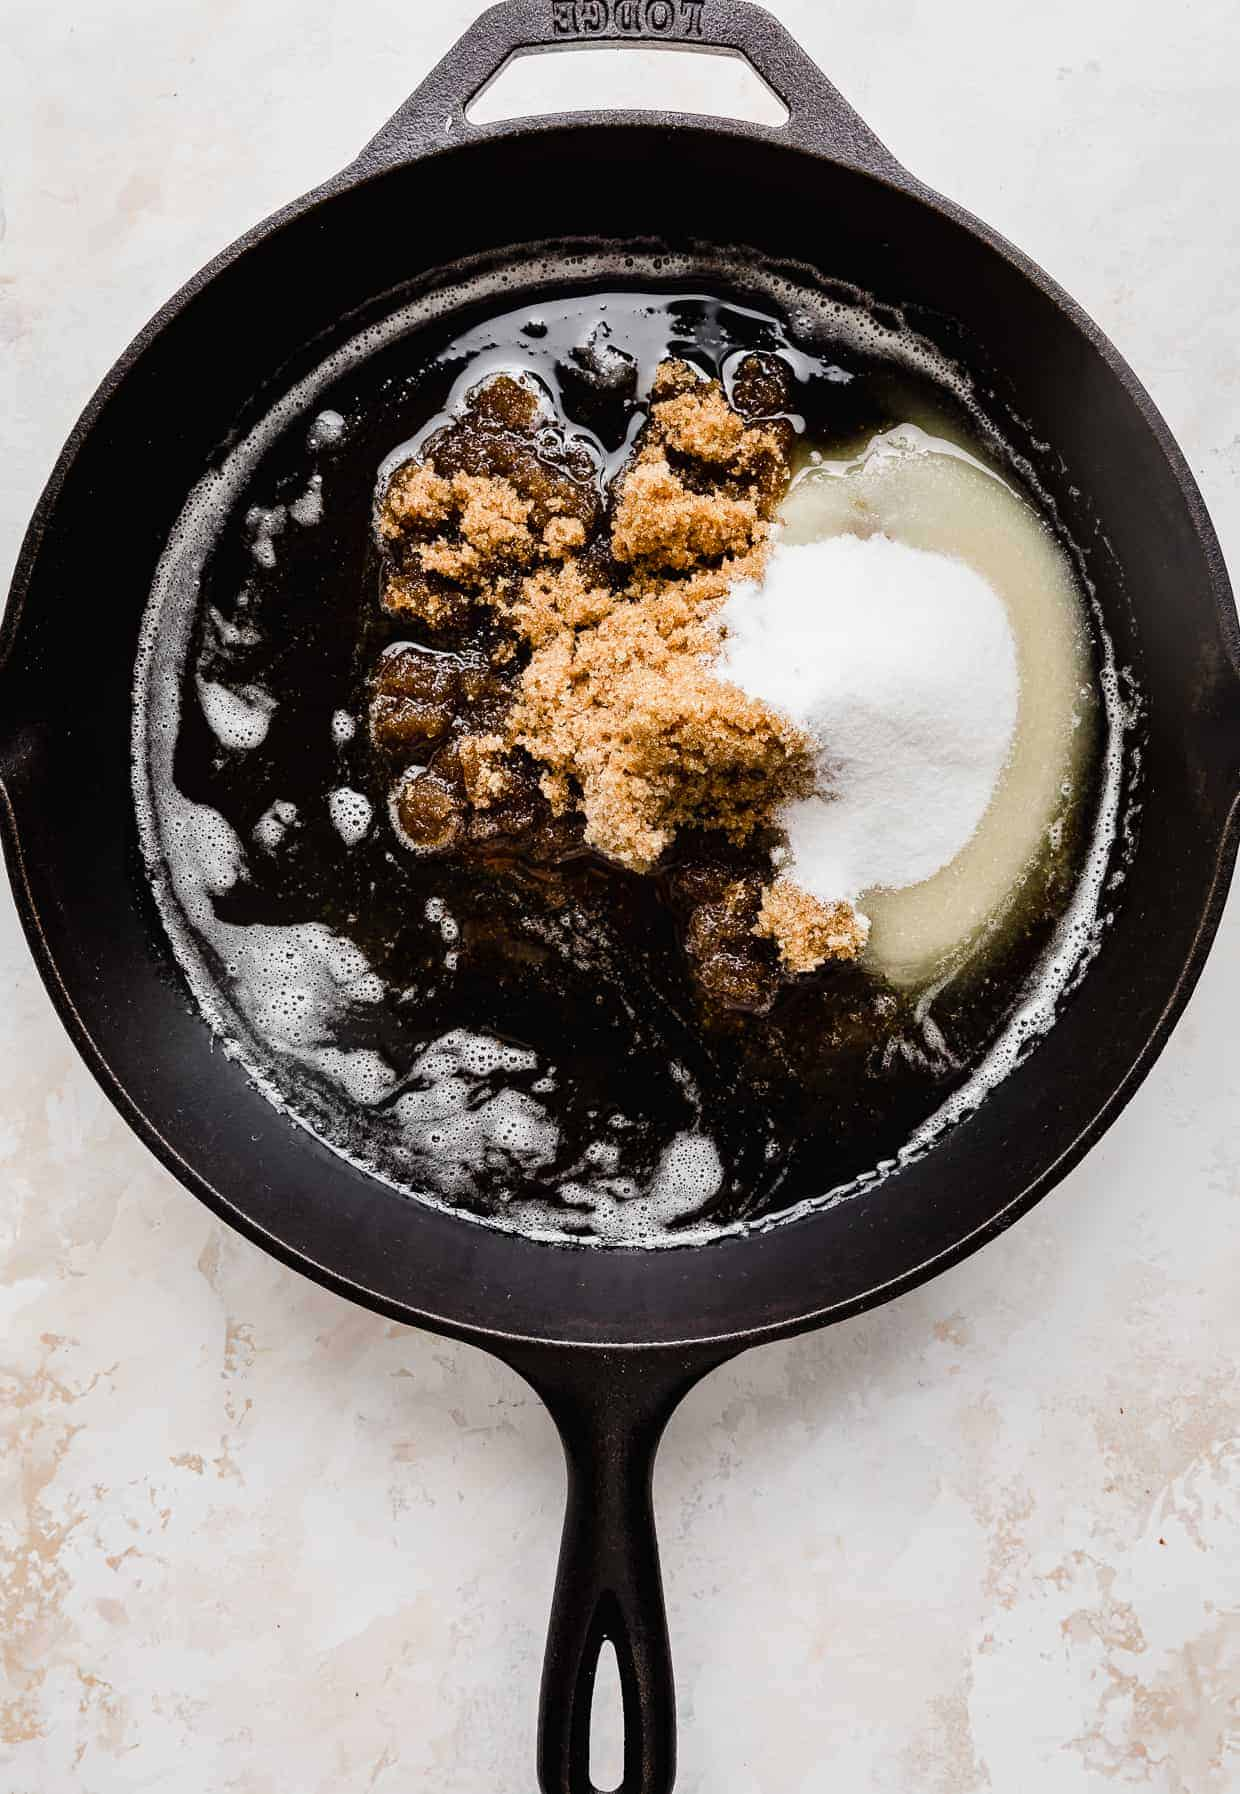 A black skillet with melted butter, sugar, and brown sugar in it.